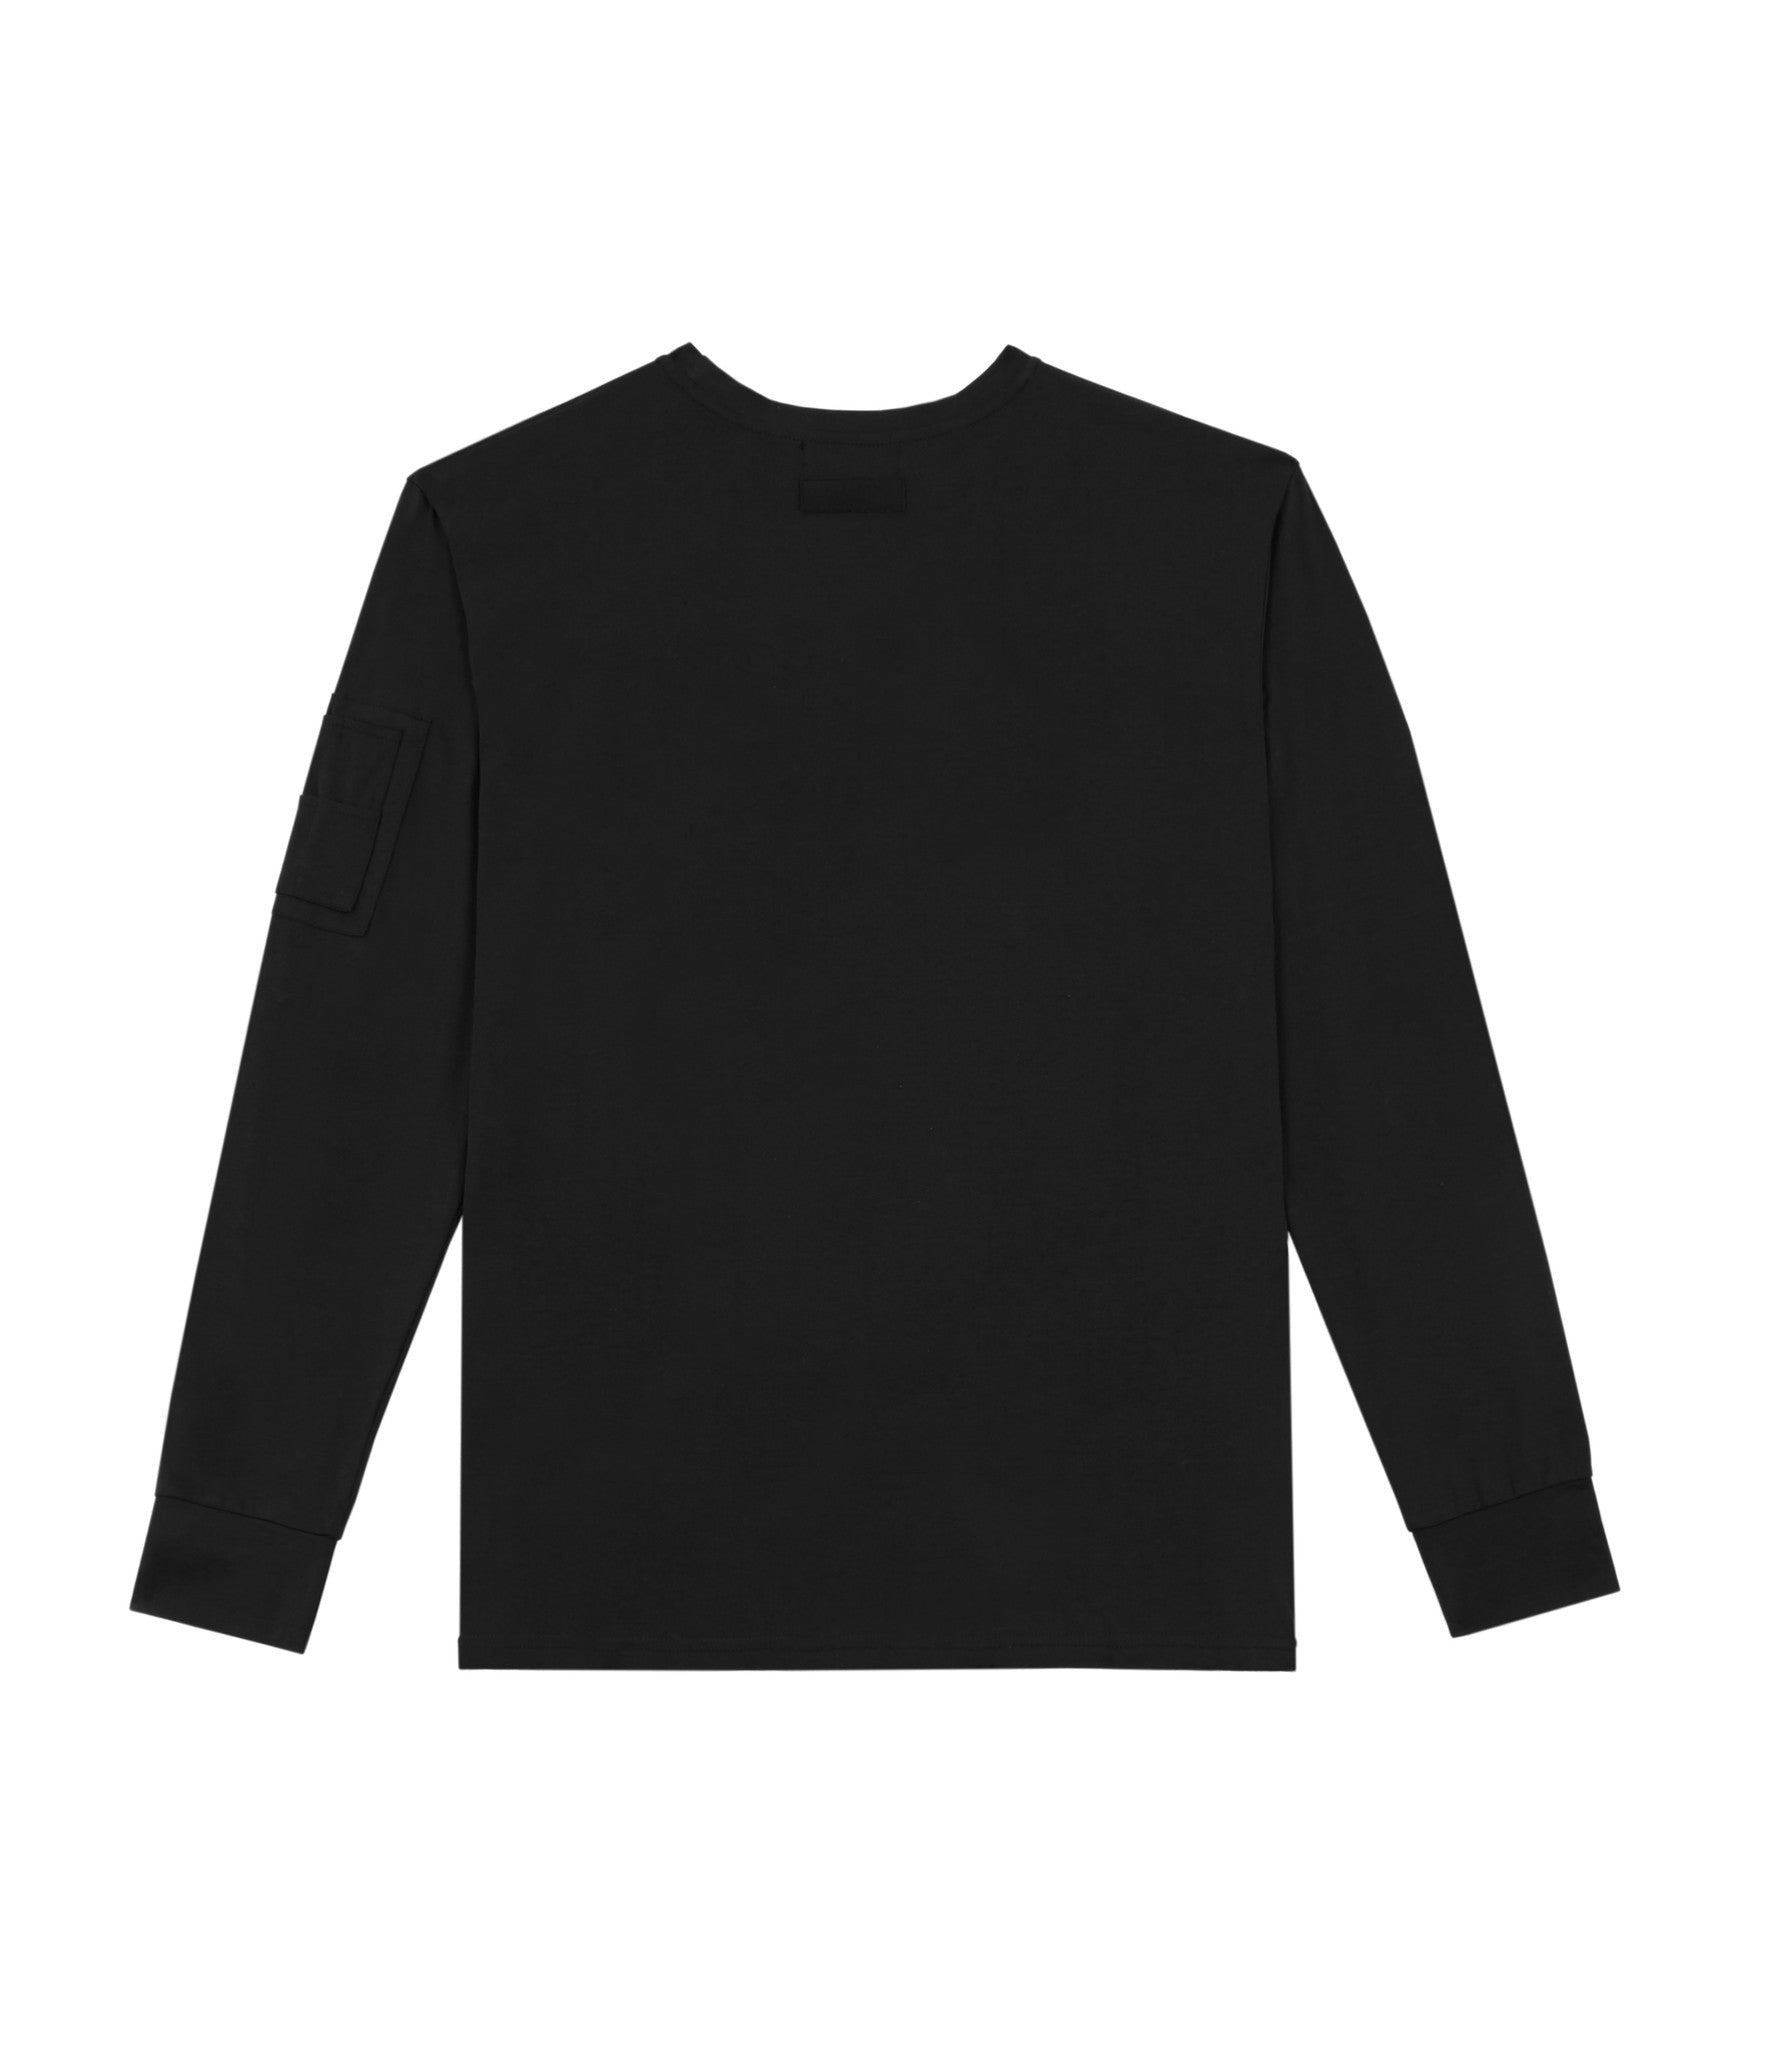 LS303 Utility Long-Sleeve Tee - Black - underated london - underatedco - 3